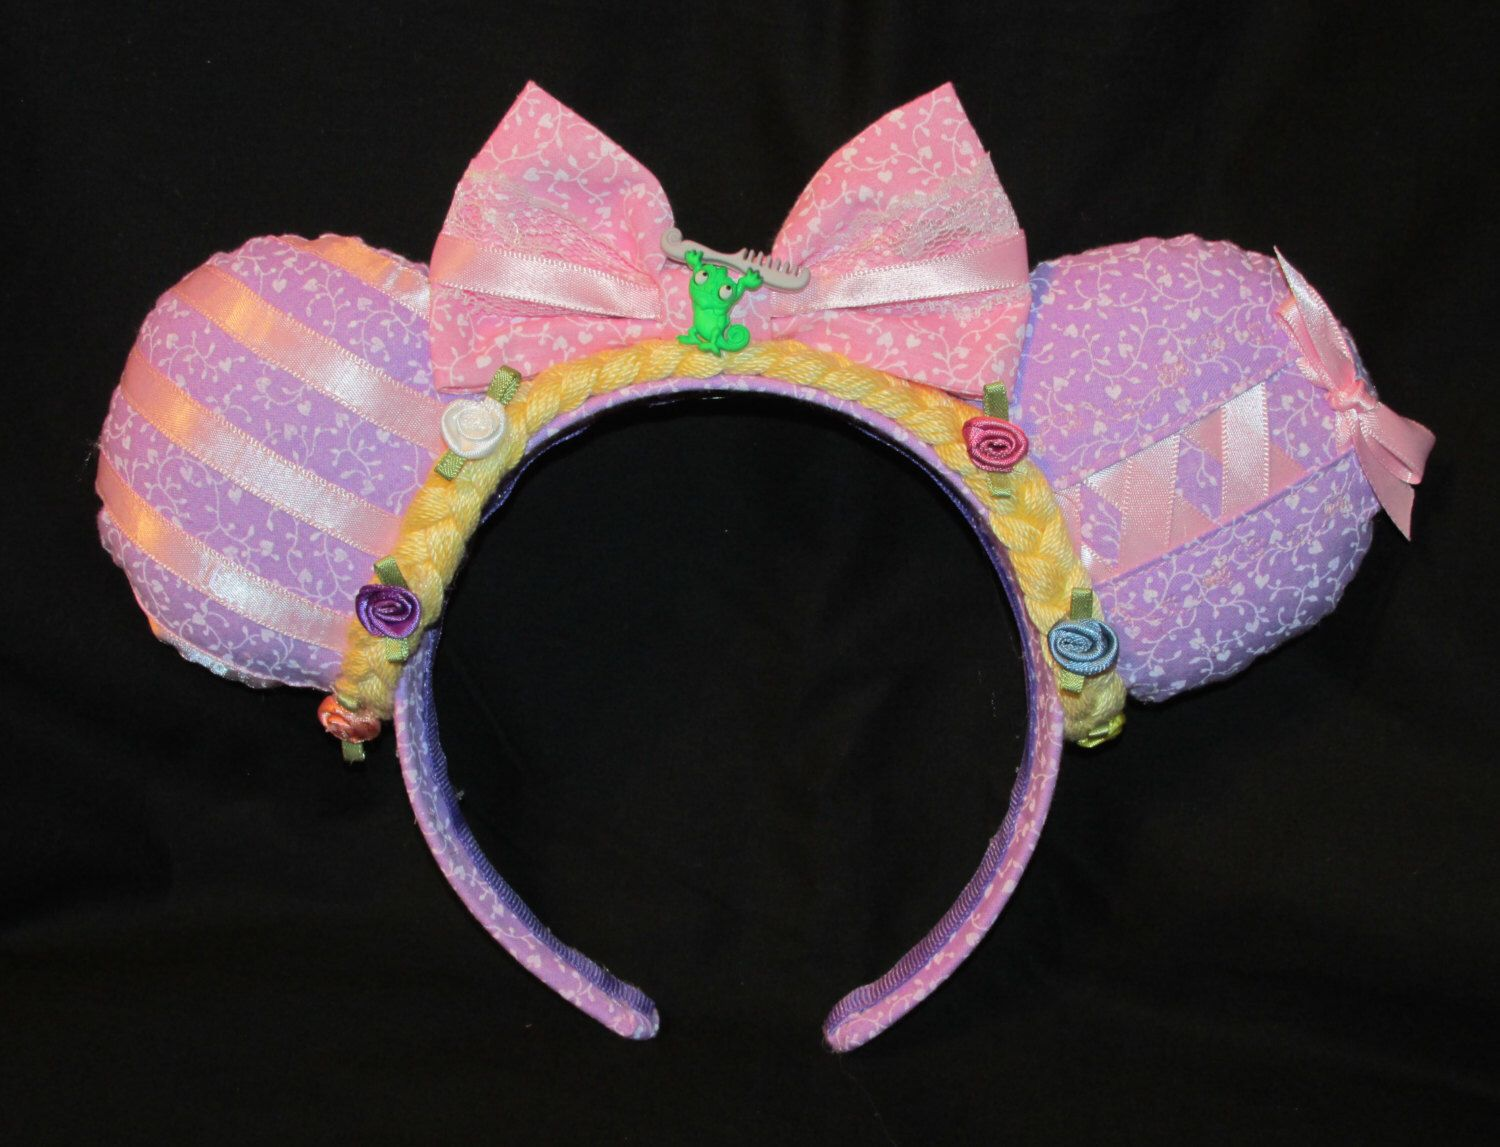 Custom Character Mouse Ears by Yodelin' Cowgirl http://yodelincowgirl.storenvy.com/products/12326840-custom-character-mouse-ears